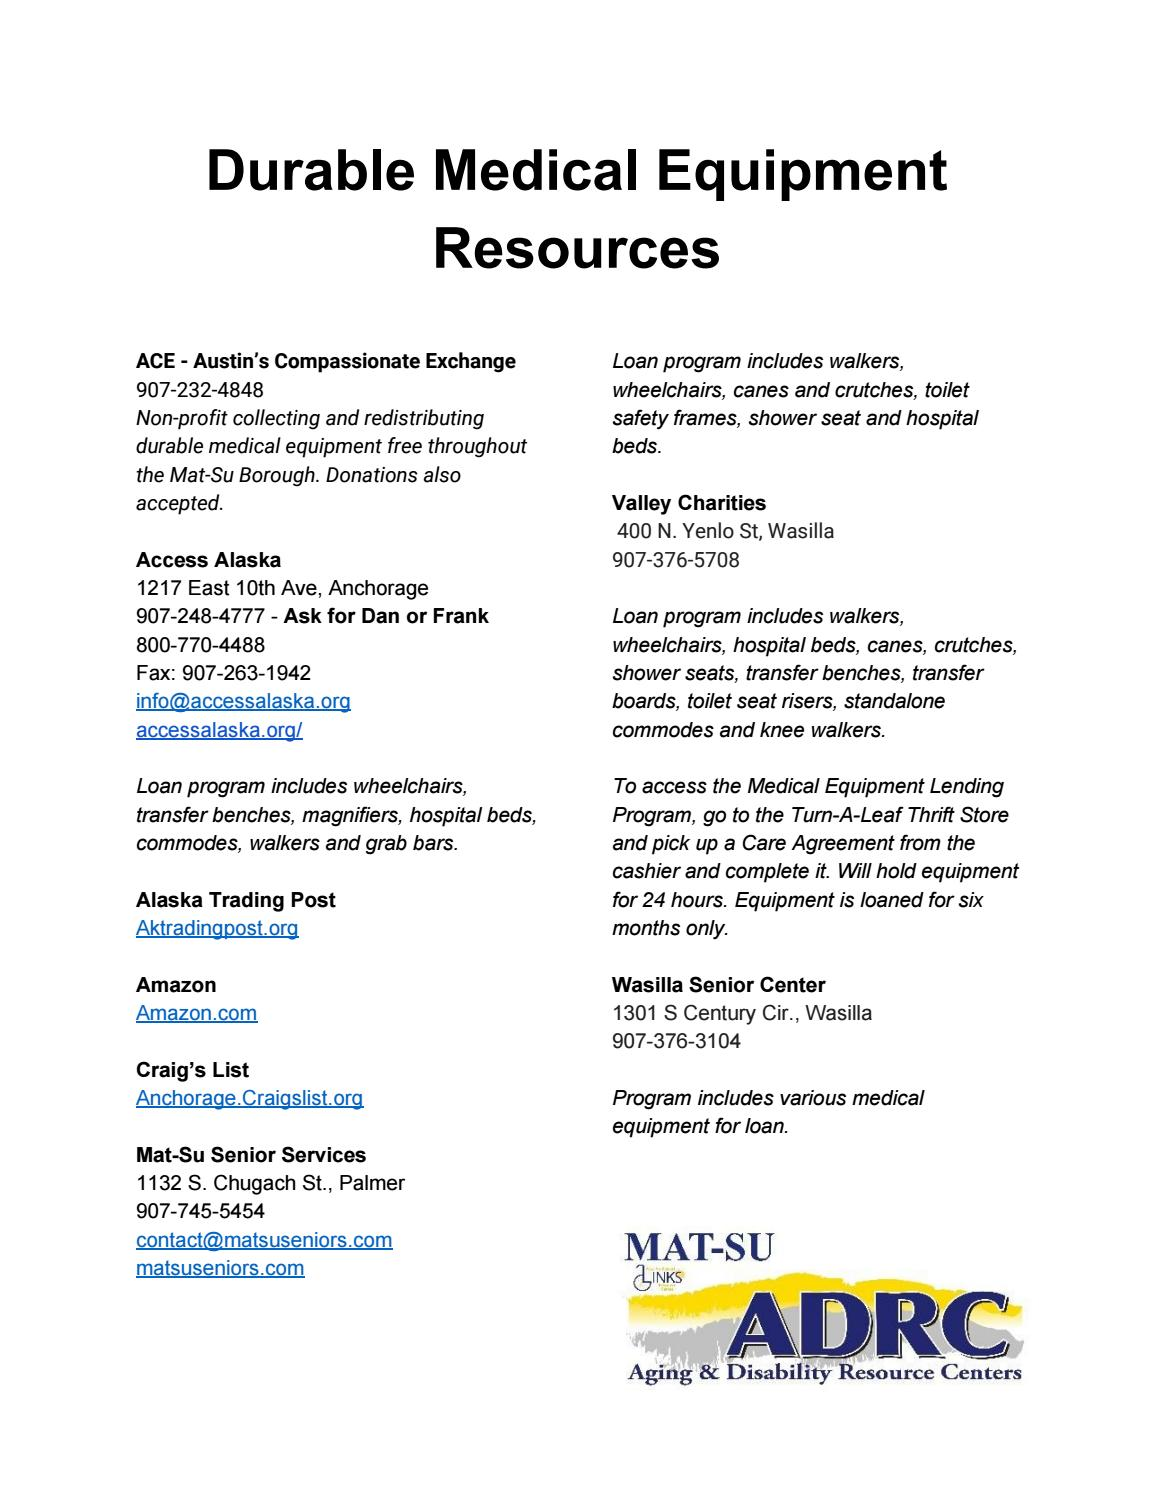 Durable Medical Equipment Resources By Adrc Mat Su Issuu